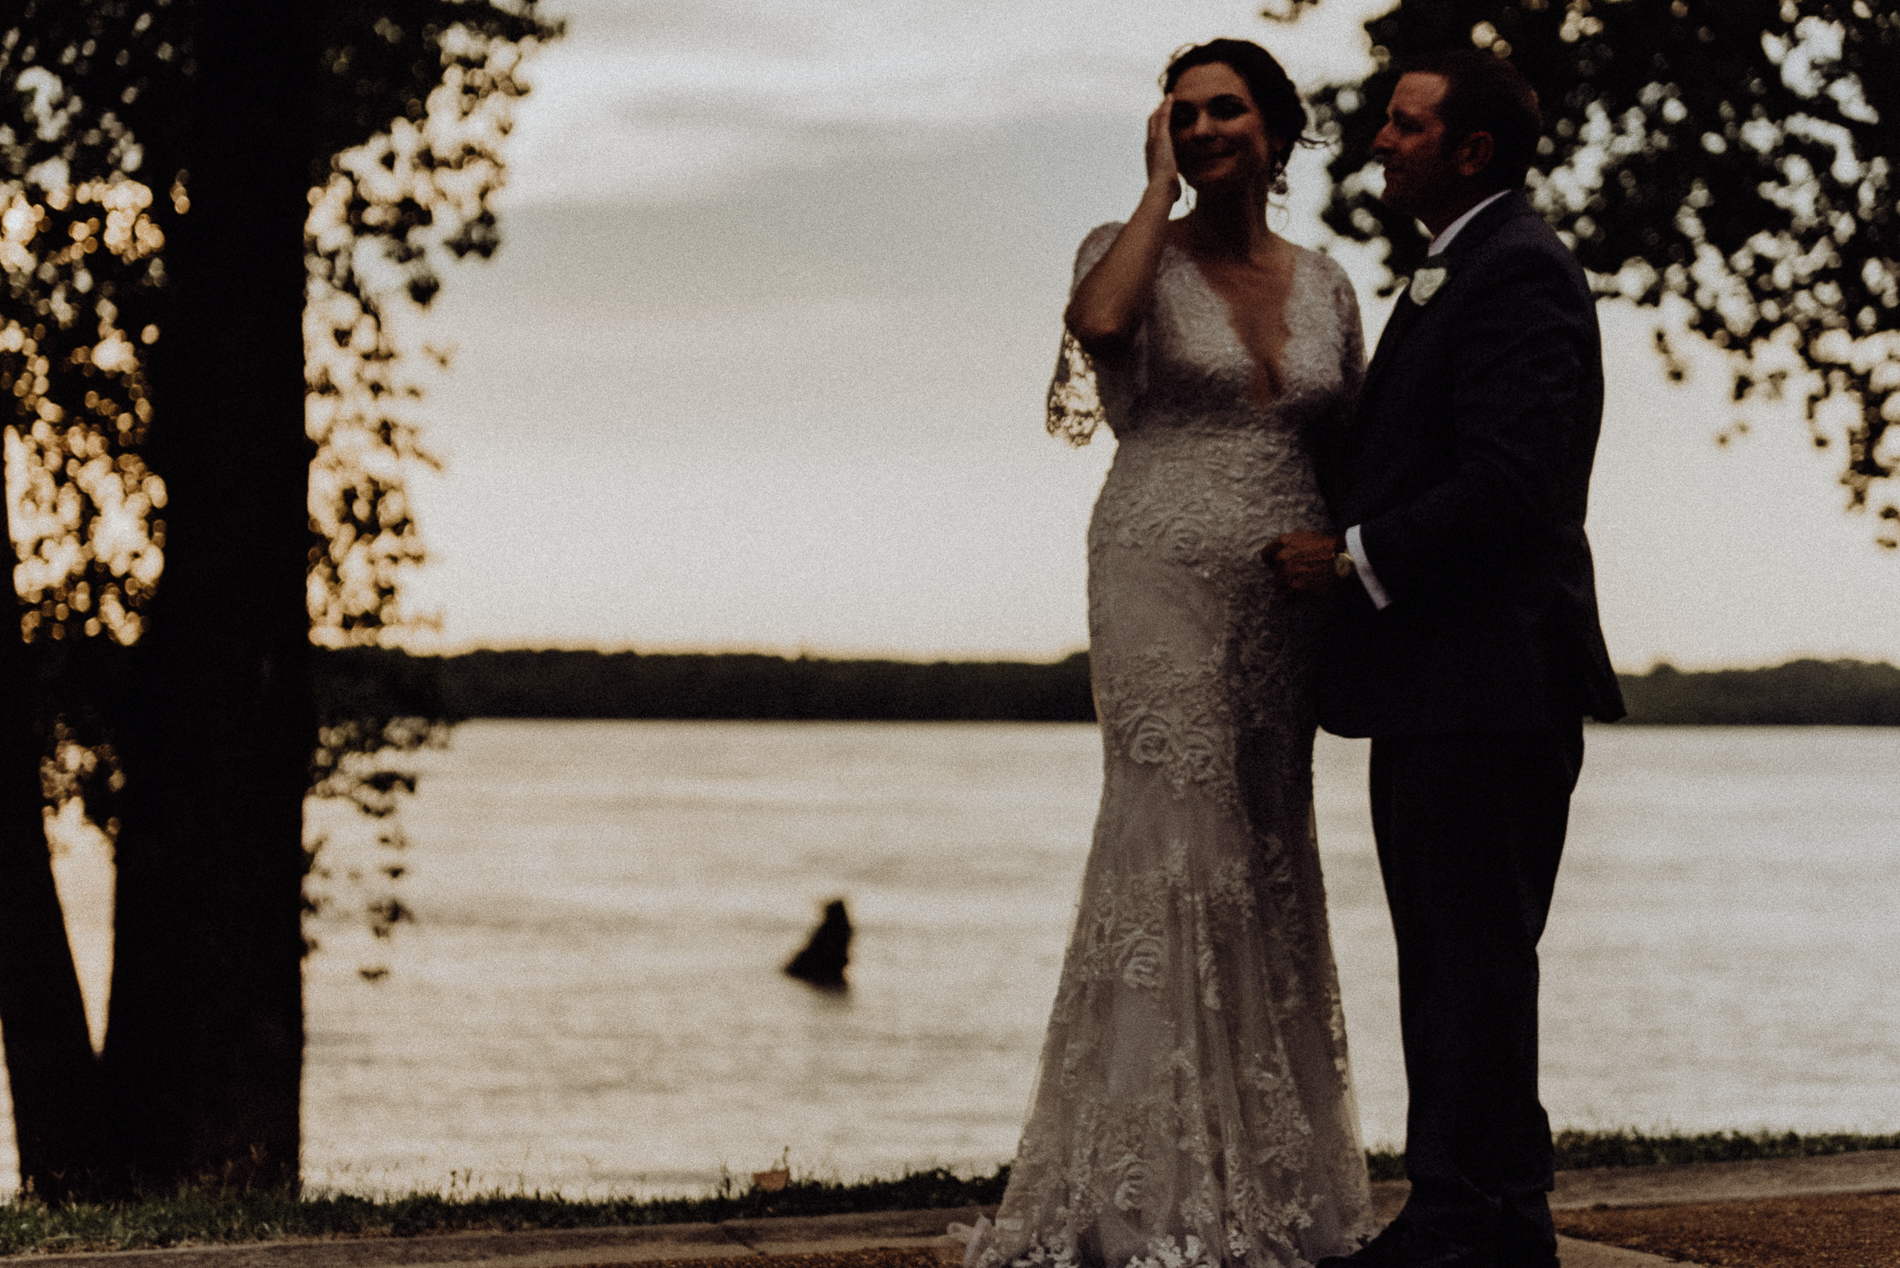 julia and dennis wedding at graceland by wilde company-128.jpg